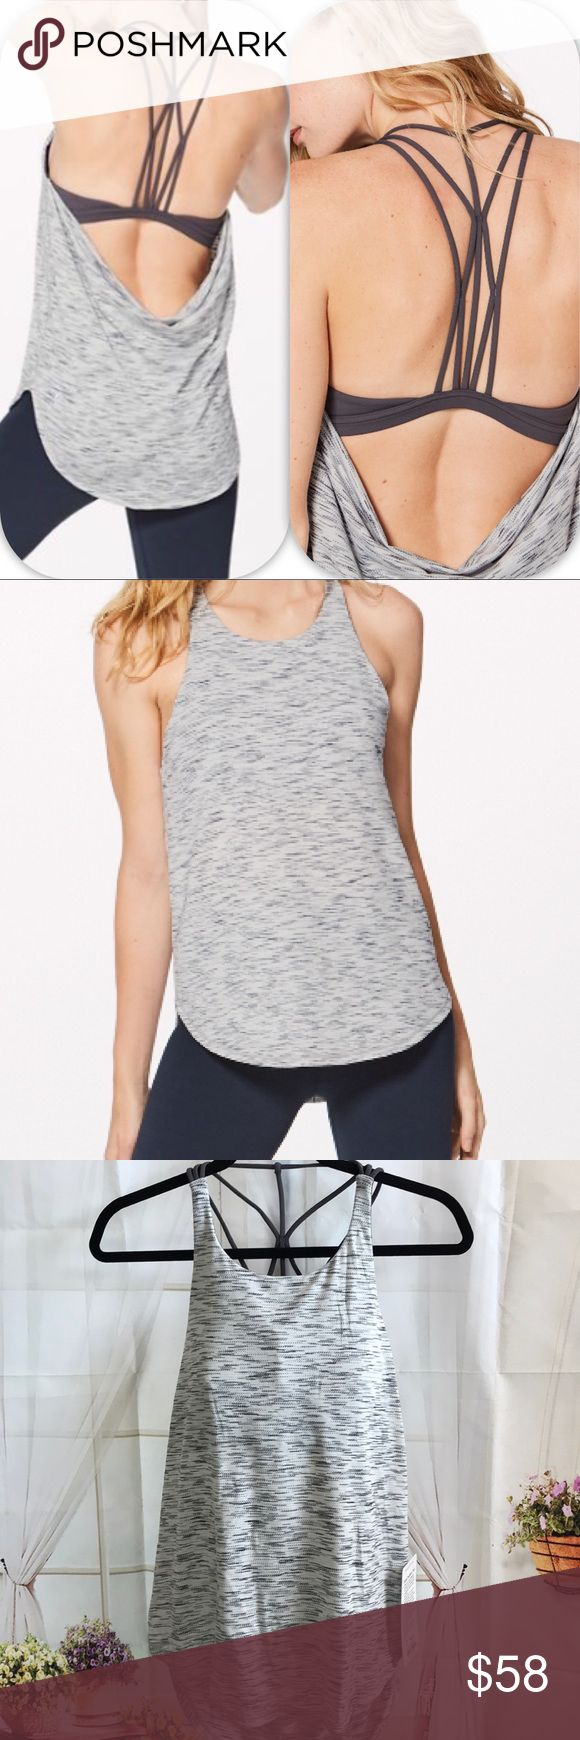 NWT DKCA TIGER LULULEMON RAISE THE BARRE TANK - 8 Brand: Lululemon Athletica raise the barre tank           Condition: New with tag || Size 8   📌NO  TRADES  🛑NO LOWBALL OFFERS  ⛔️NO RUDE COMMENTS  🚷NO MODELING  ☀️Please don't discuss prices in the comment box. Make a reasonable offer and I'll either counter, accept or decline.   I will try to respond to all inquiries in a timely manner. Please check out the rest of my closet, I have various brands. Some new with tag, others in excellent…